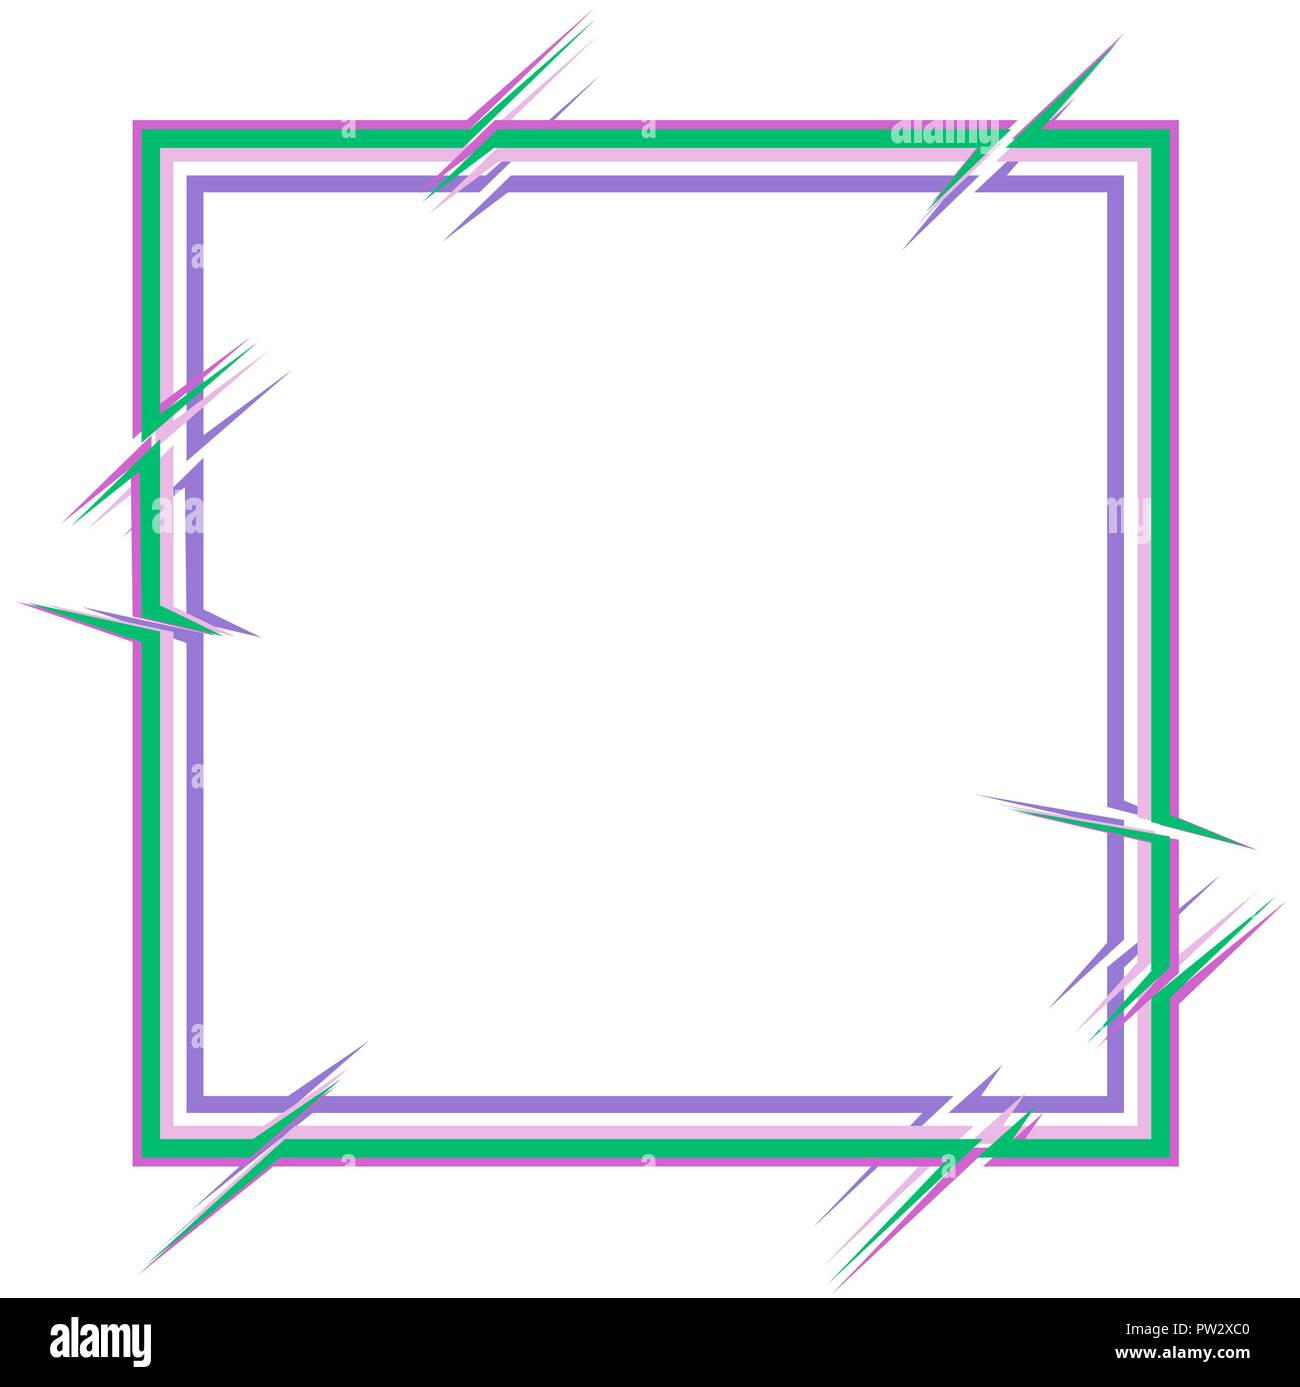 square frame with breaks of contours of several elements, glitch - Stock Vector